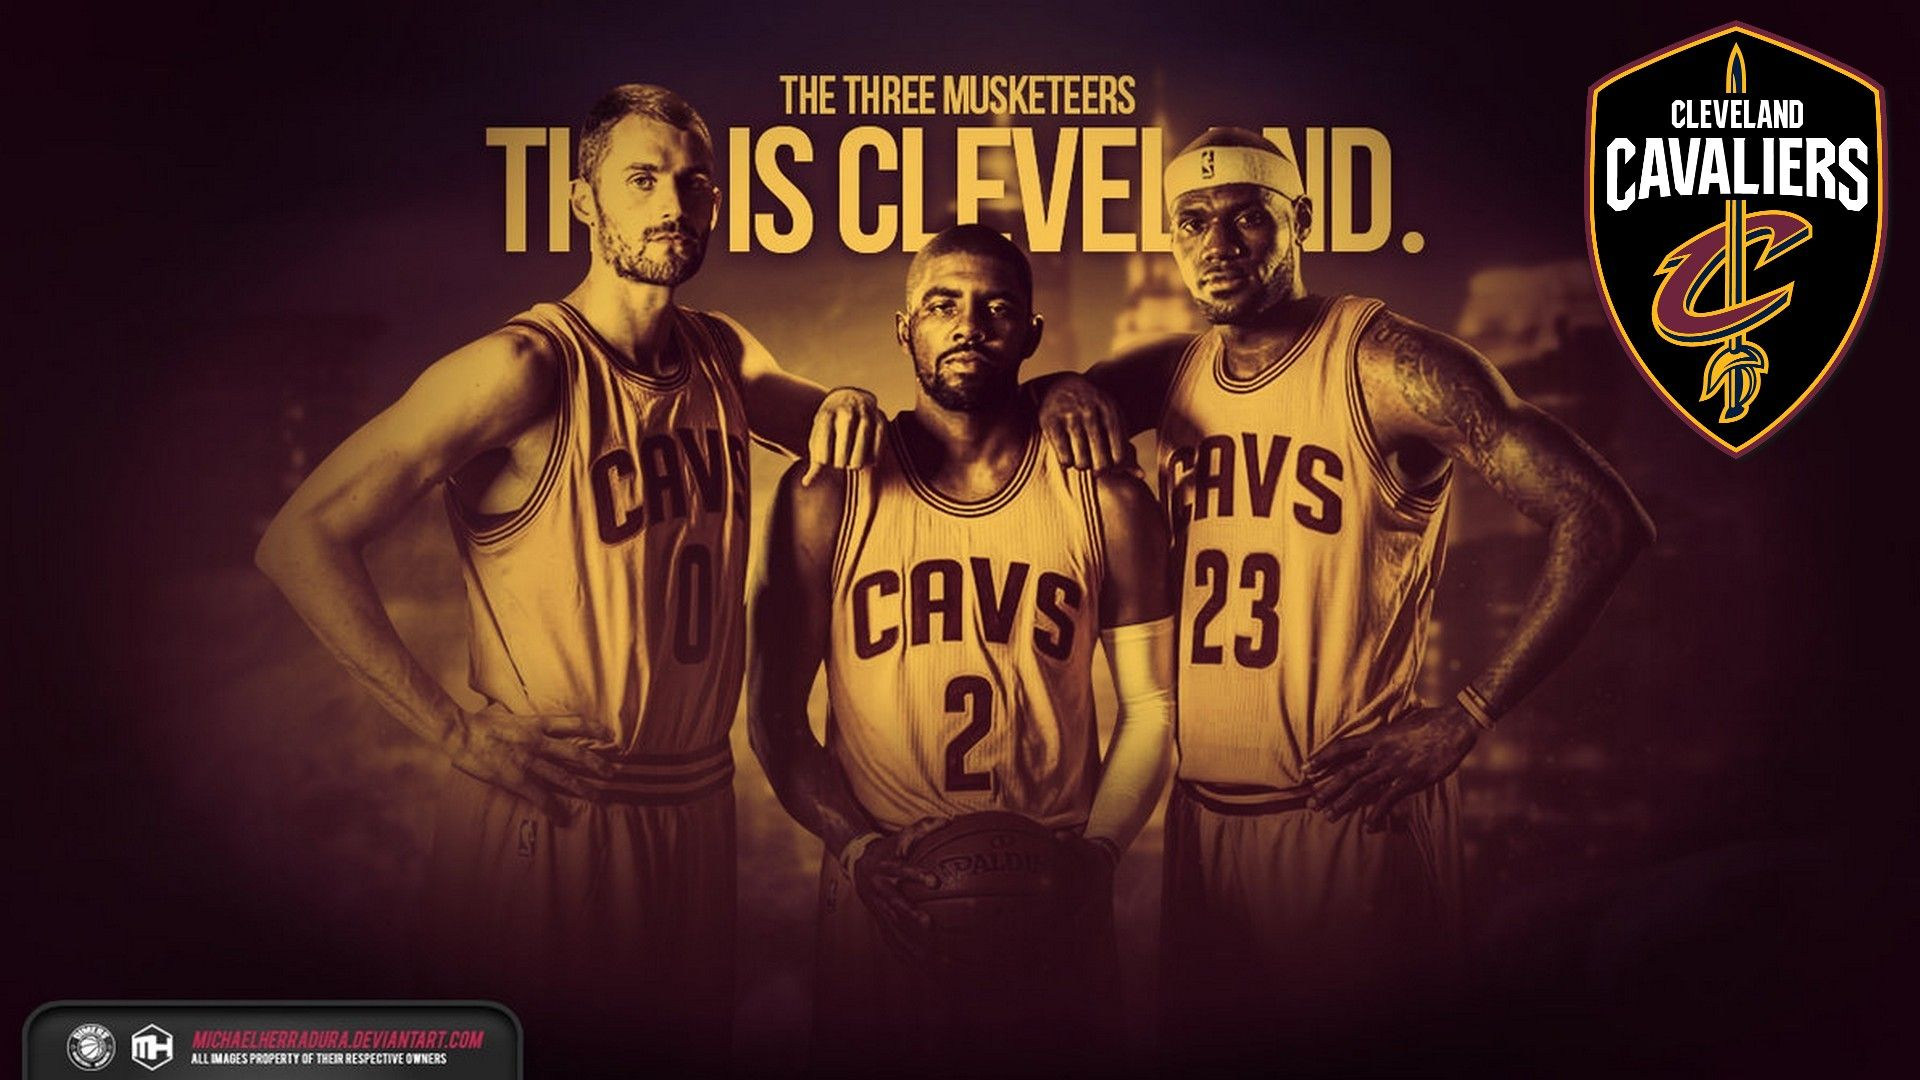 Big 3 Cleveland Cavaliers Wallpaper Hd 2020 Basketball Wallpaper Cavaliers Wallpaper Lebron James Background Basketball Wallpaper